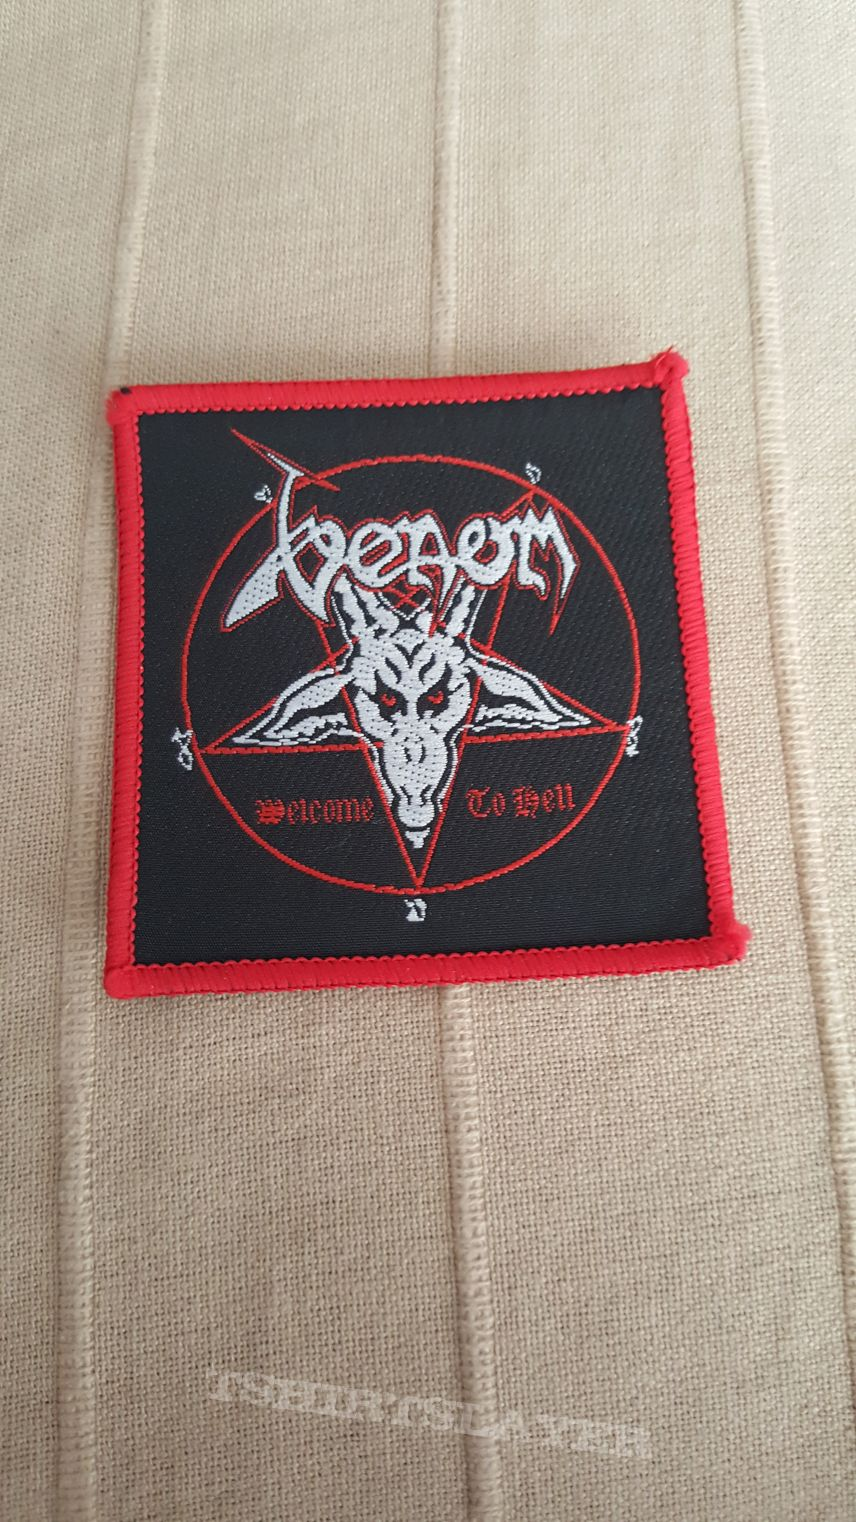 Venom - Welcome To Hell Original Square Patch With Red Borders